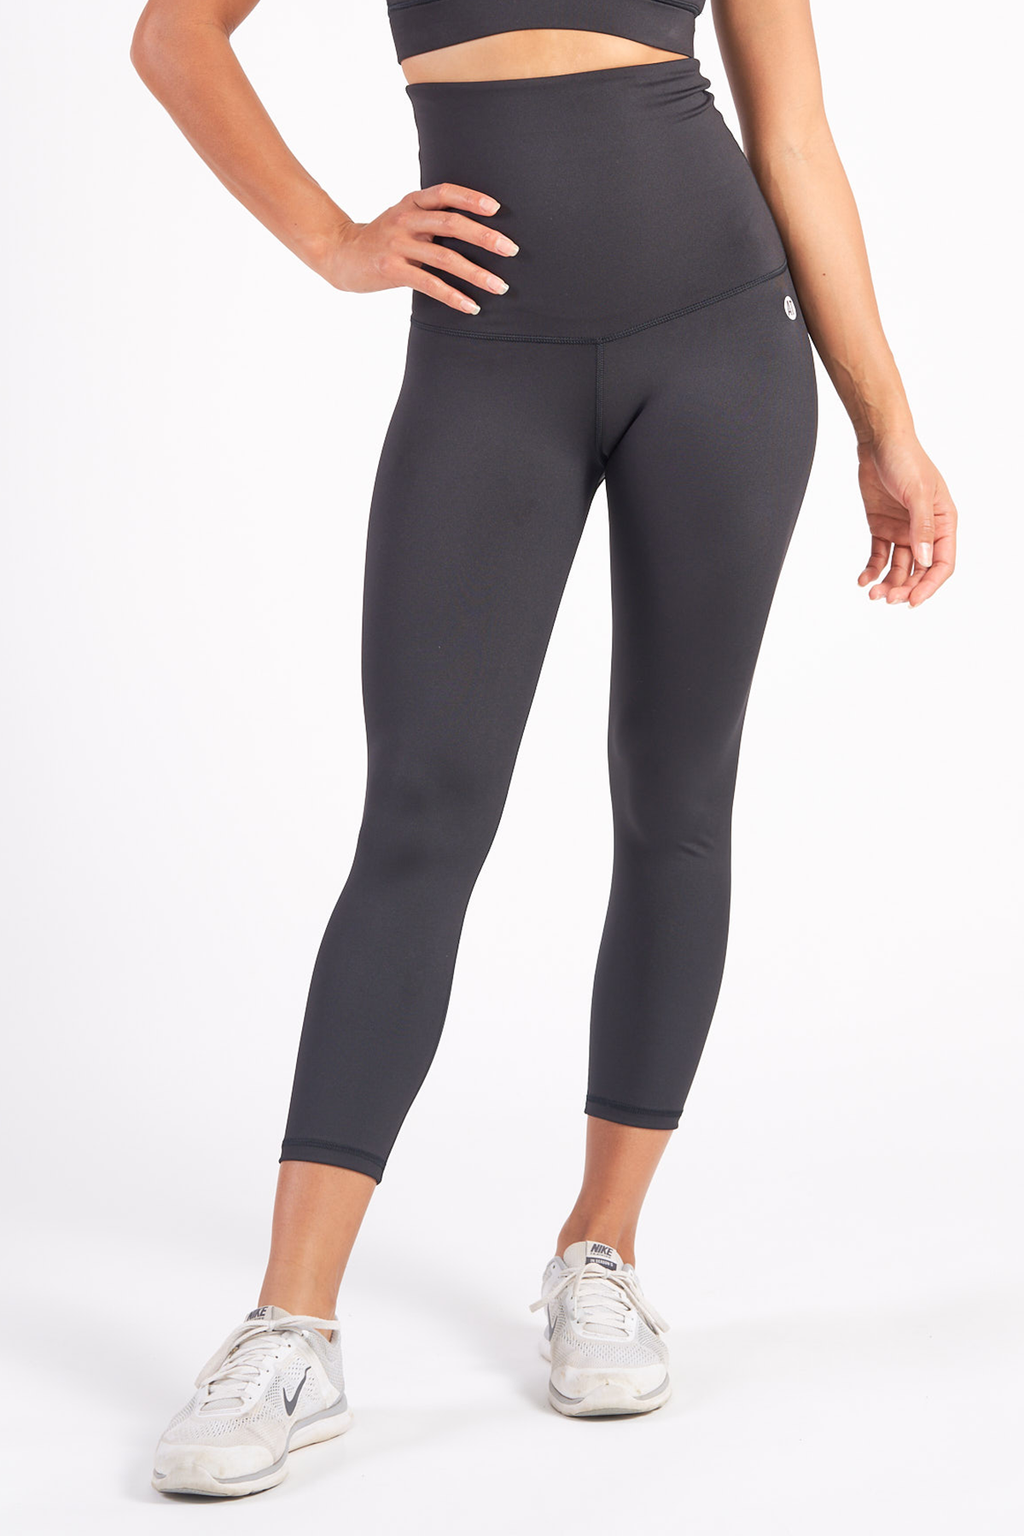 postnatal-recovery-tights-78-length-black-small-front2